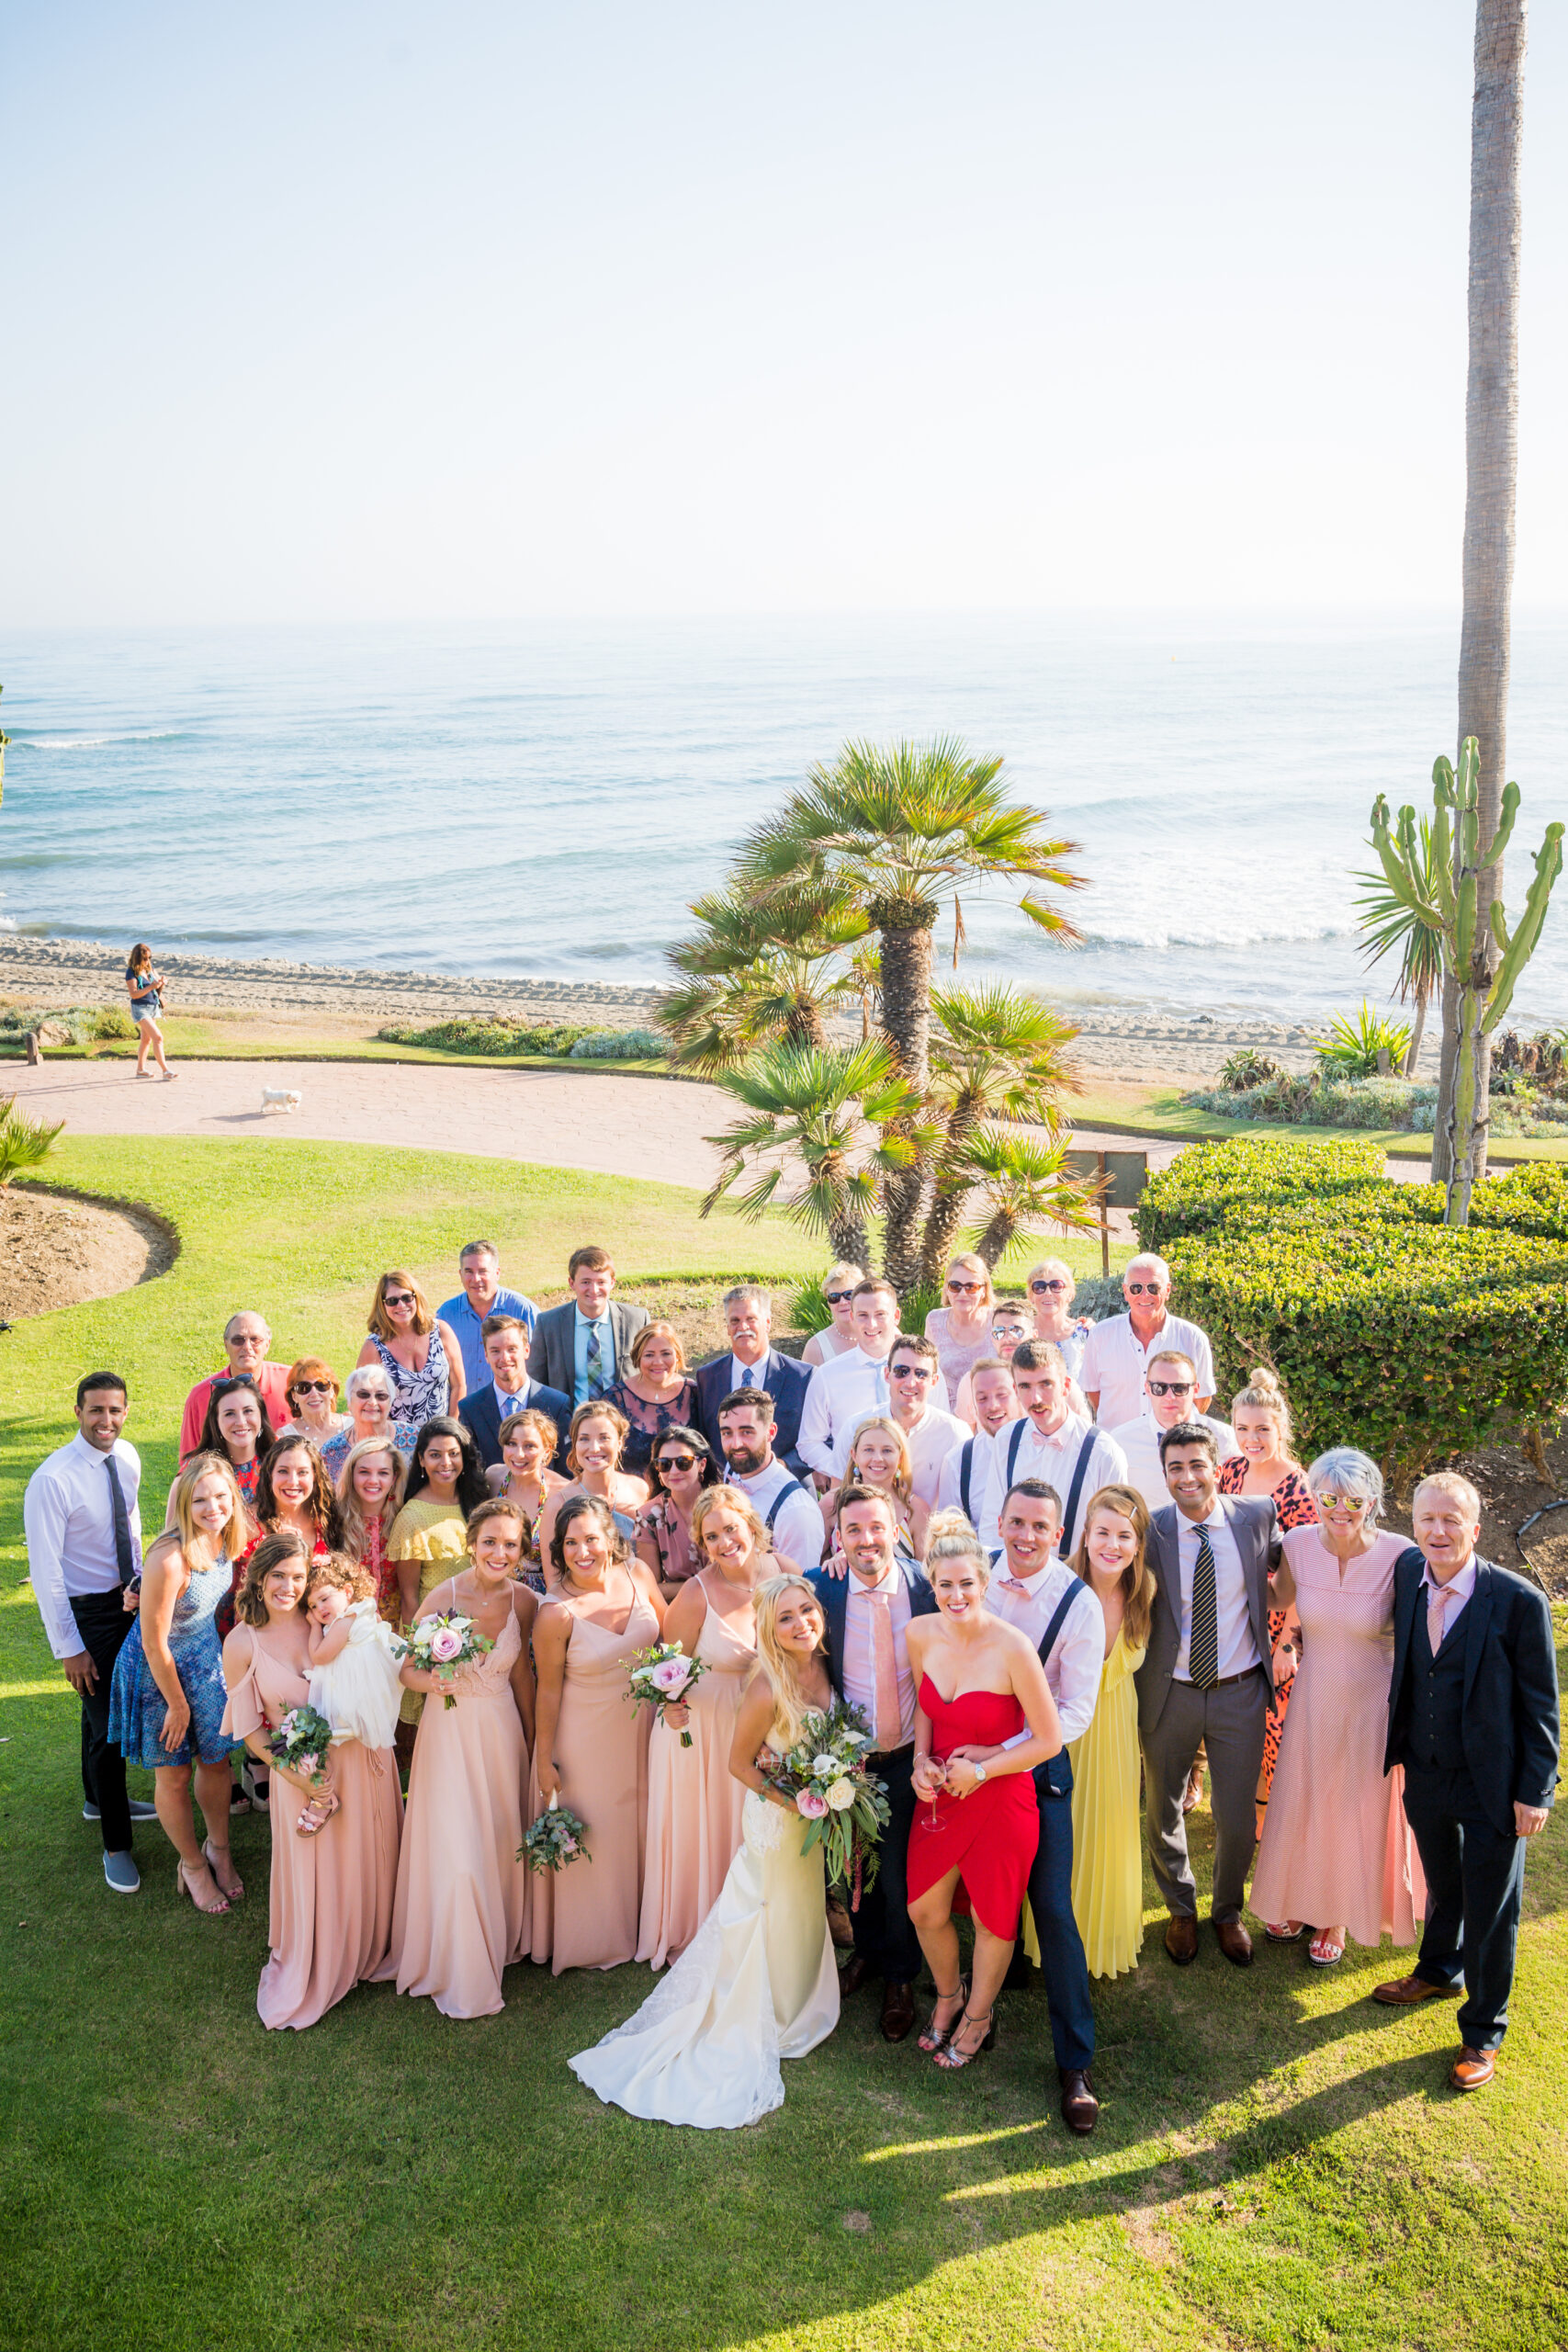 The bridal party by the sea - Rebecca Davidson Photography